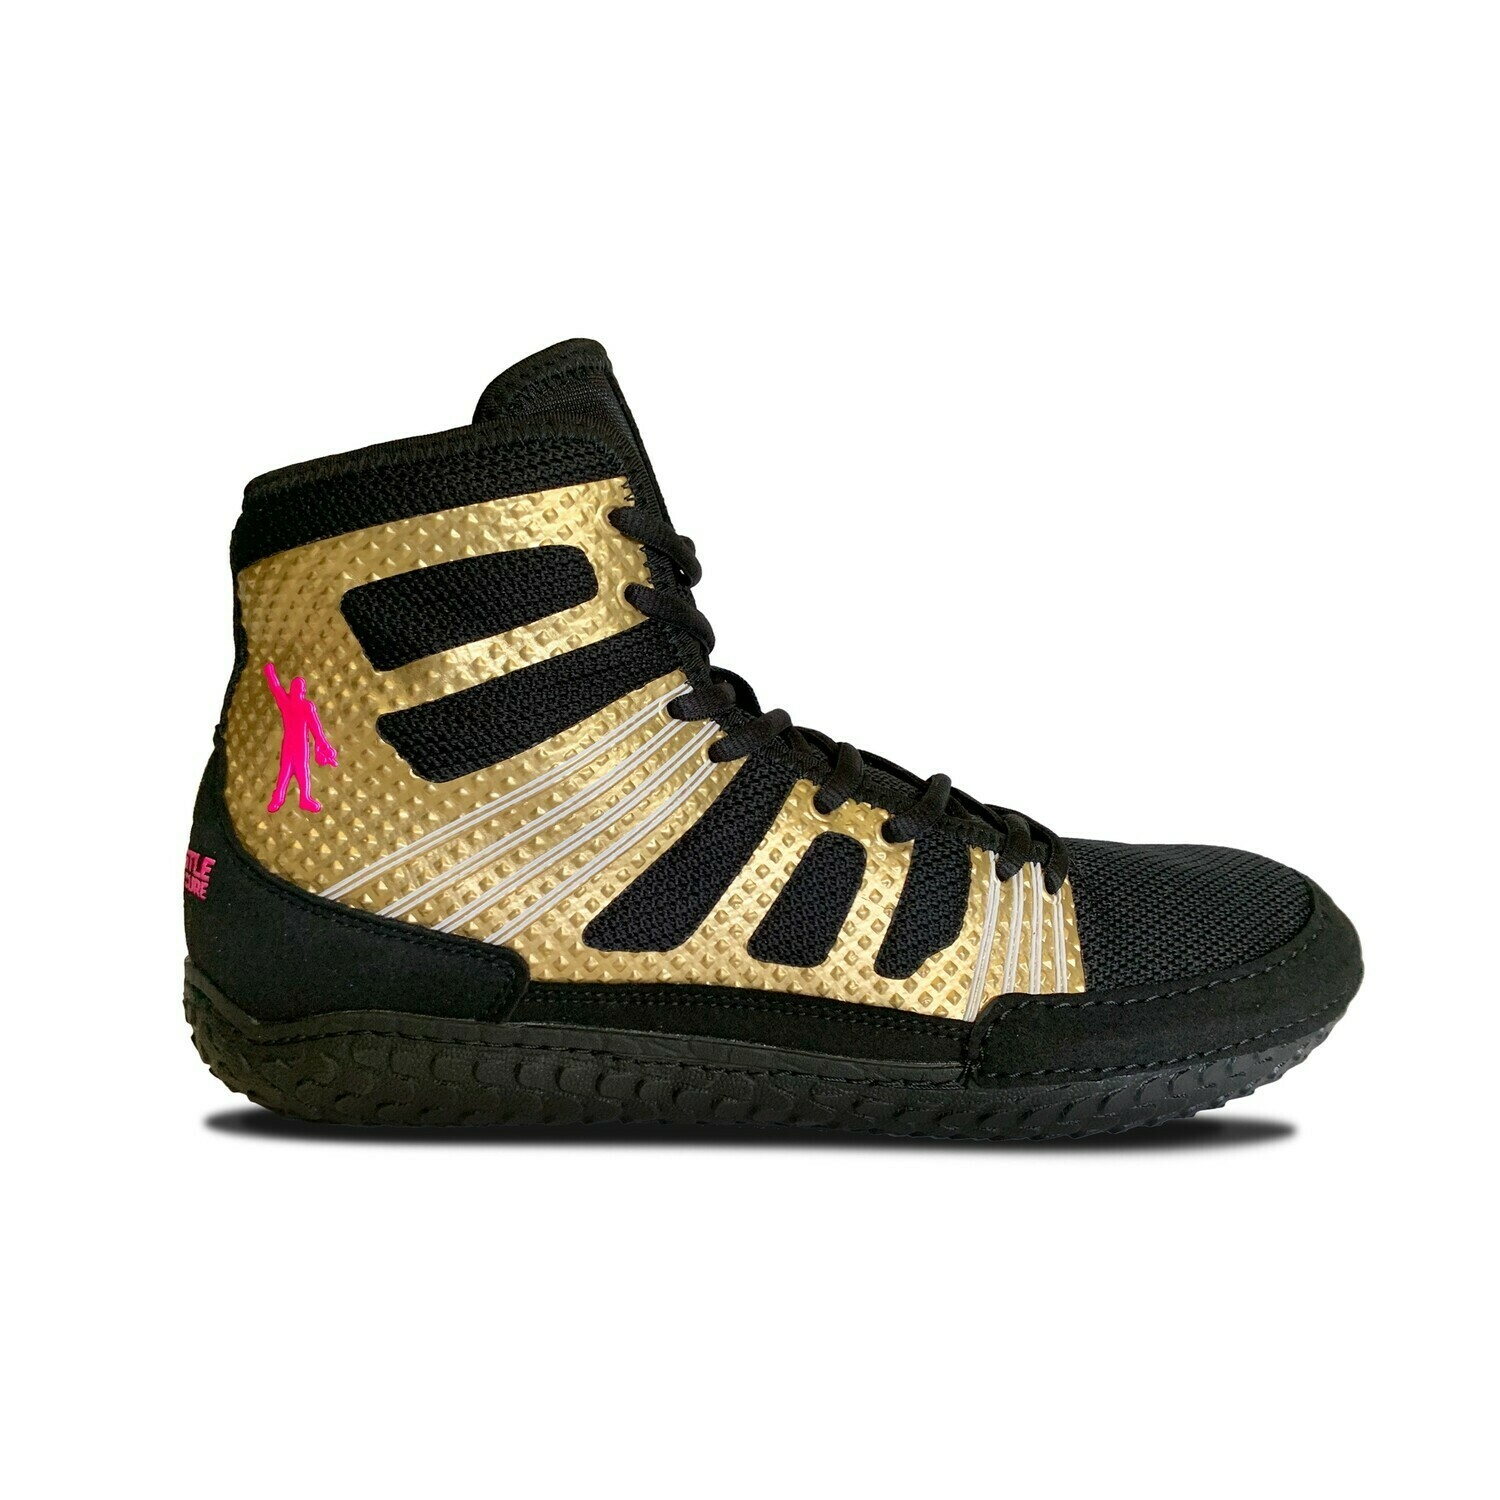 TG Predator - Pin Cancer™ Gold Edition Wrestling Shoe